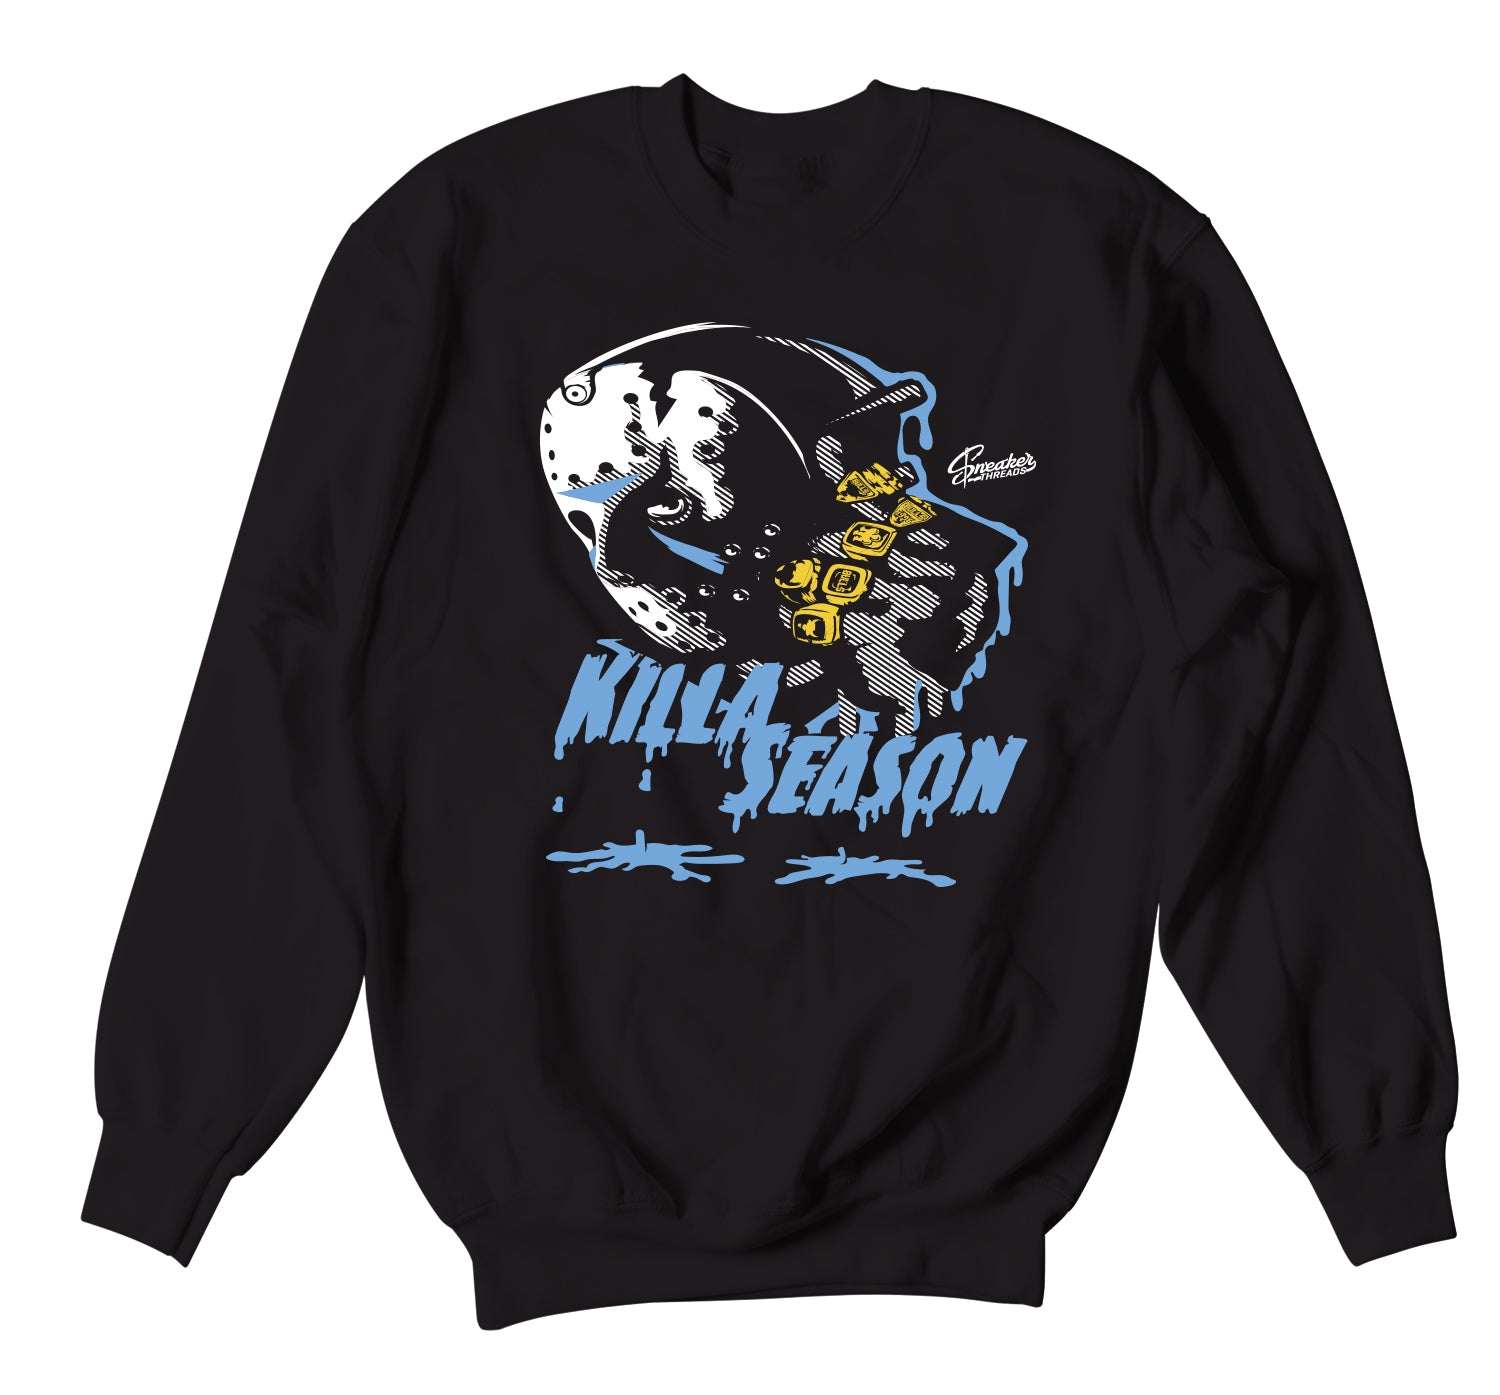 Jordan 3 UNC Sweater - Killa Season - Black